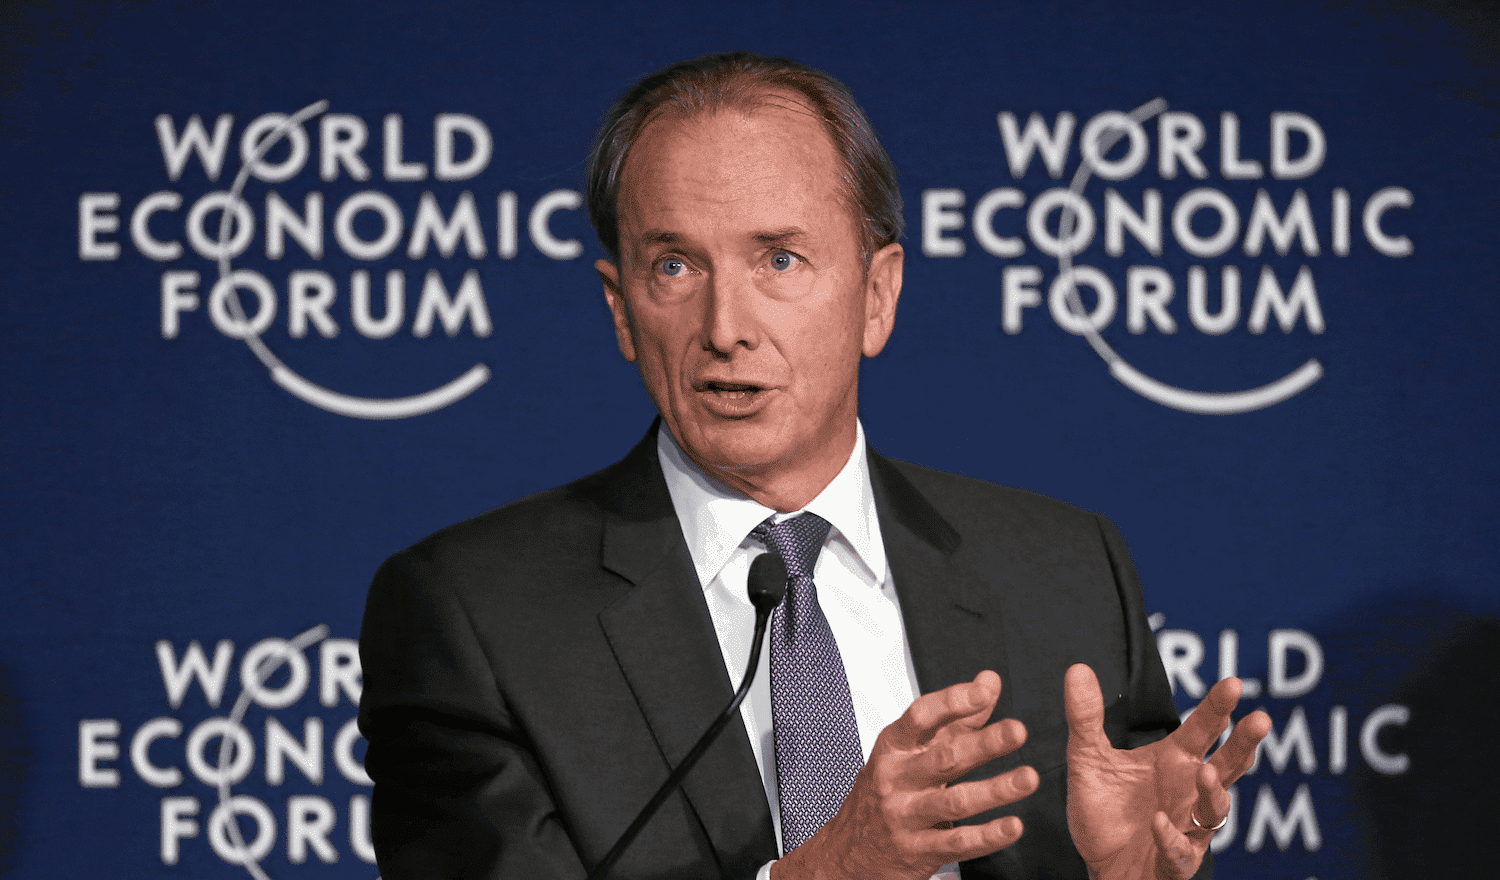 Morgan Stanley CEO: Bitcoin Is 'More Than Just A Fad'